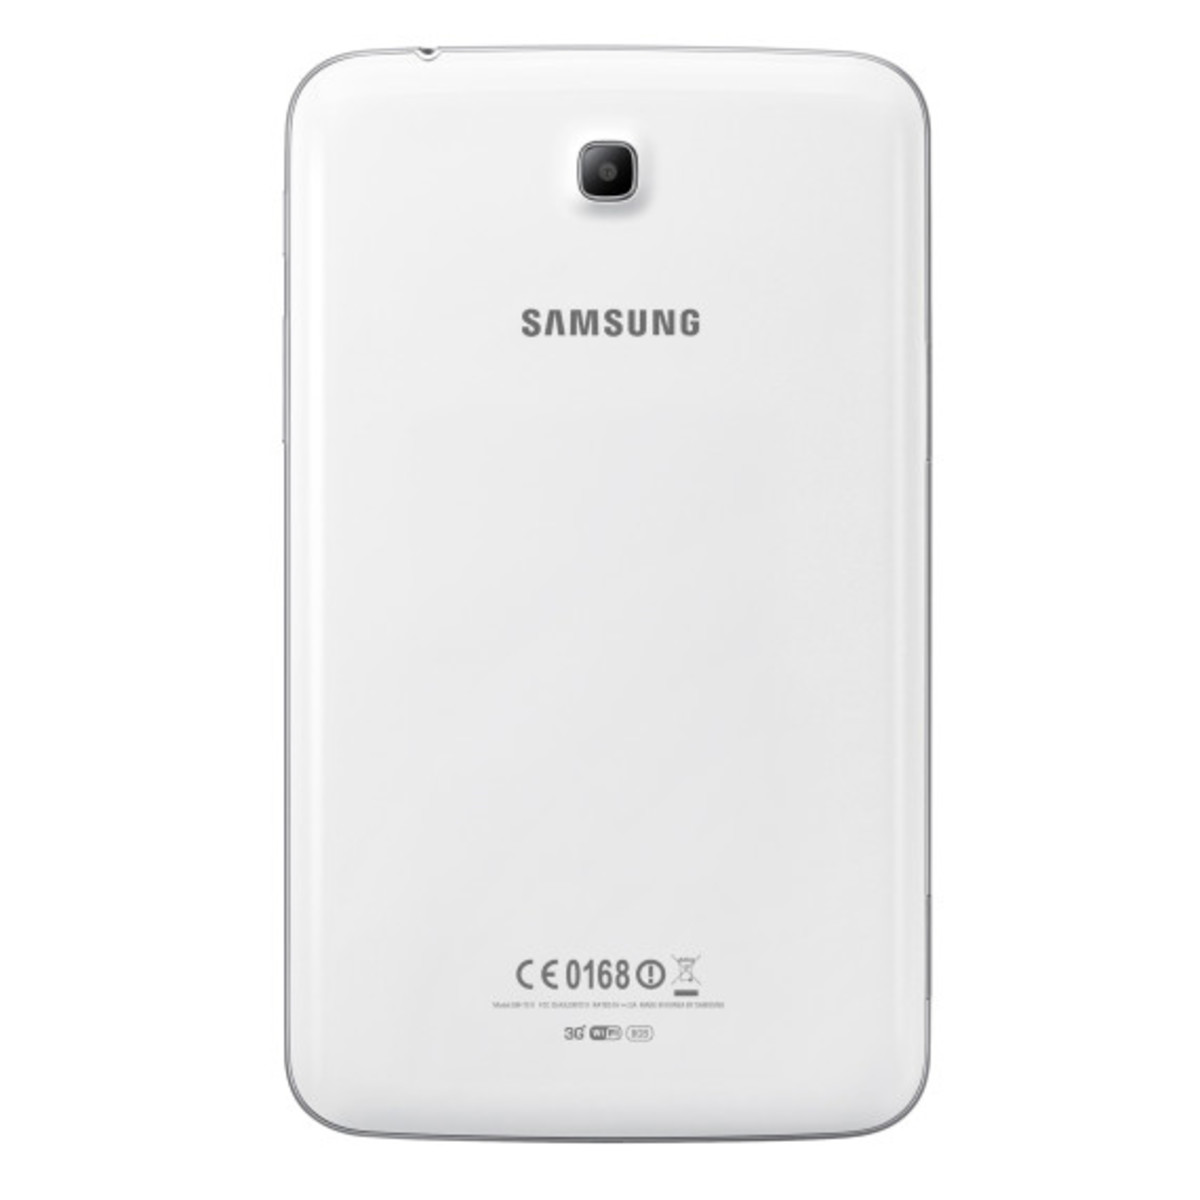 Samsung Galaxy Tab 3 - Officially Unveiled - 4